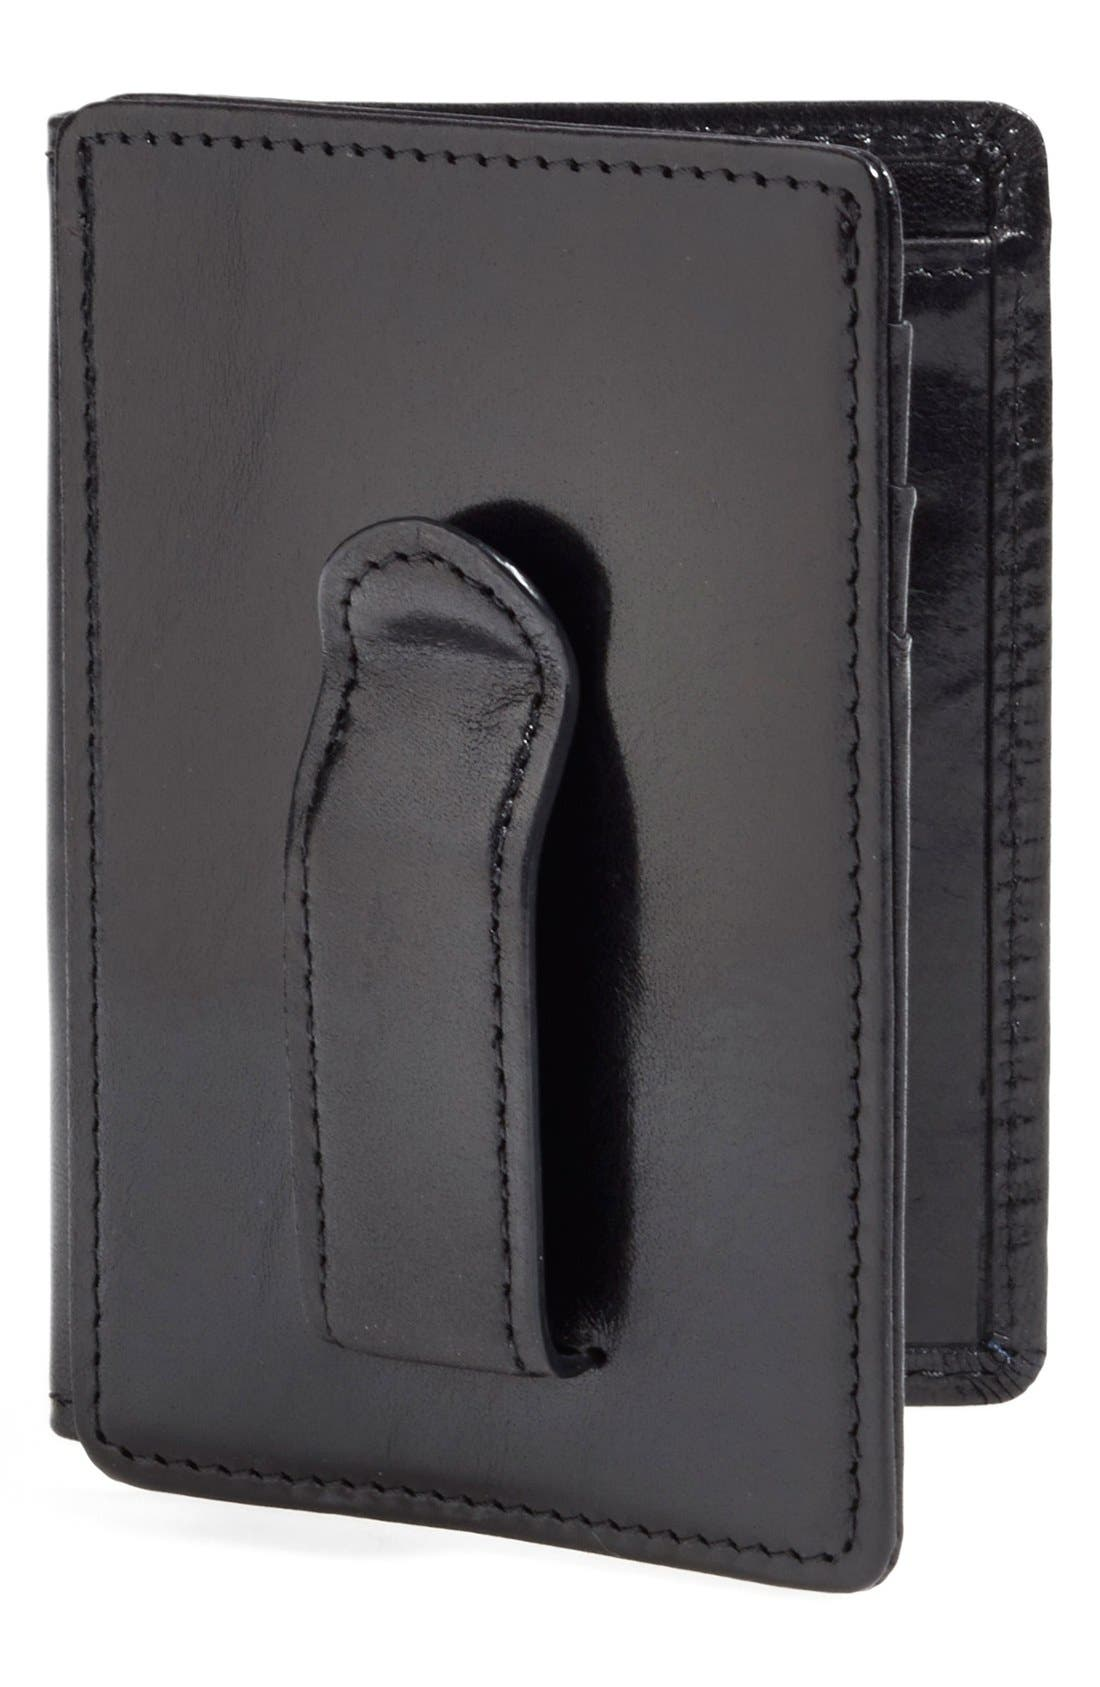 BOSCA Old Leather Front Pocket ID Wallet